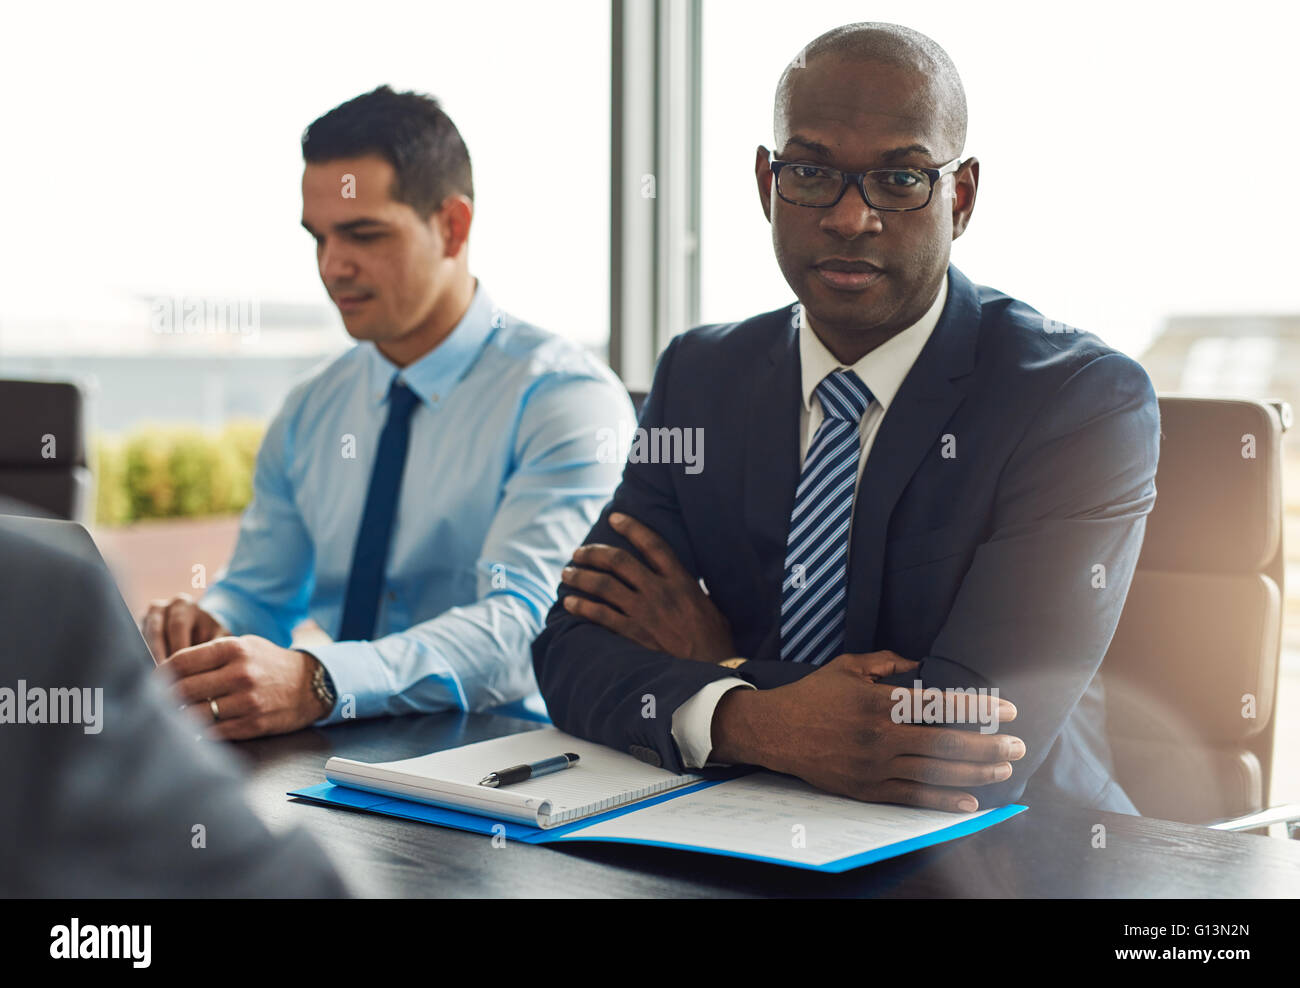 the office the meeting. Executive Multiracial Business Team Having A Meeting In The Office With Focus To Serious Middle-aged African American Man Look